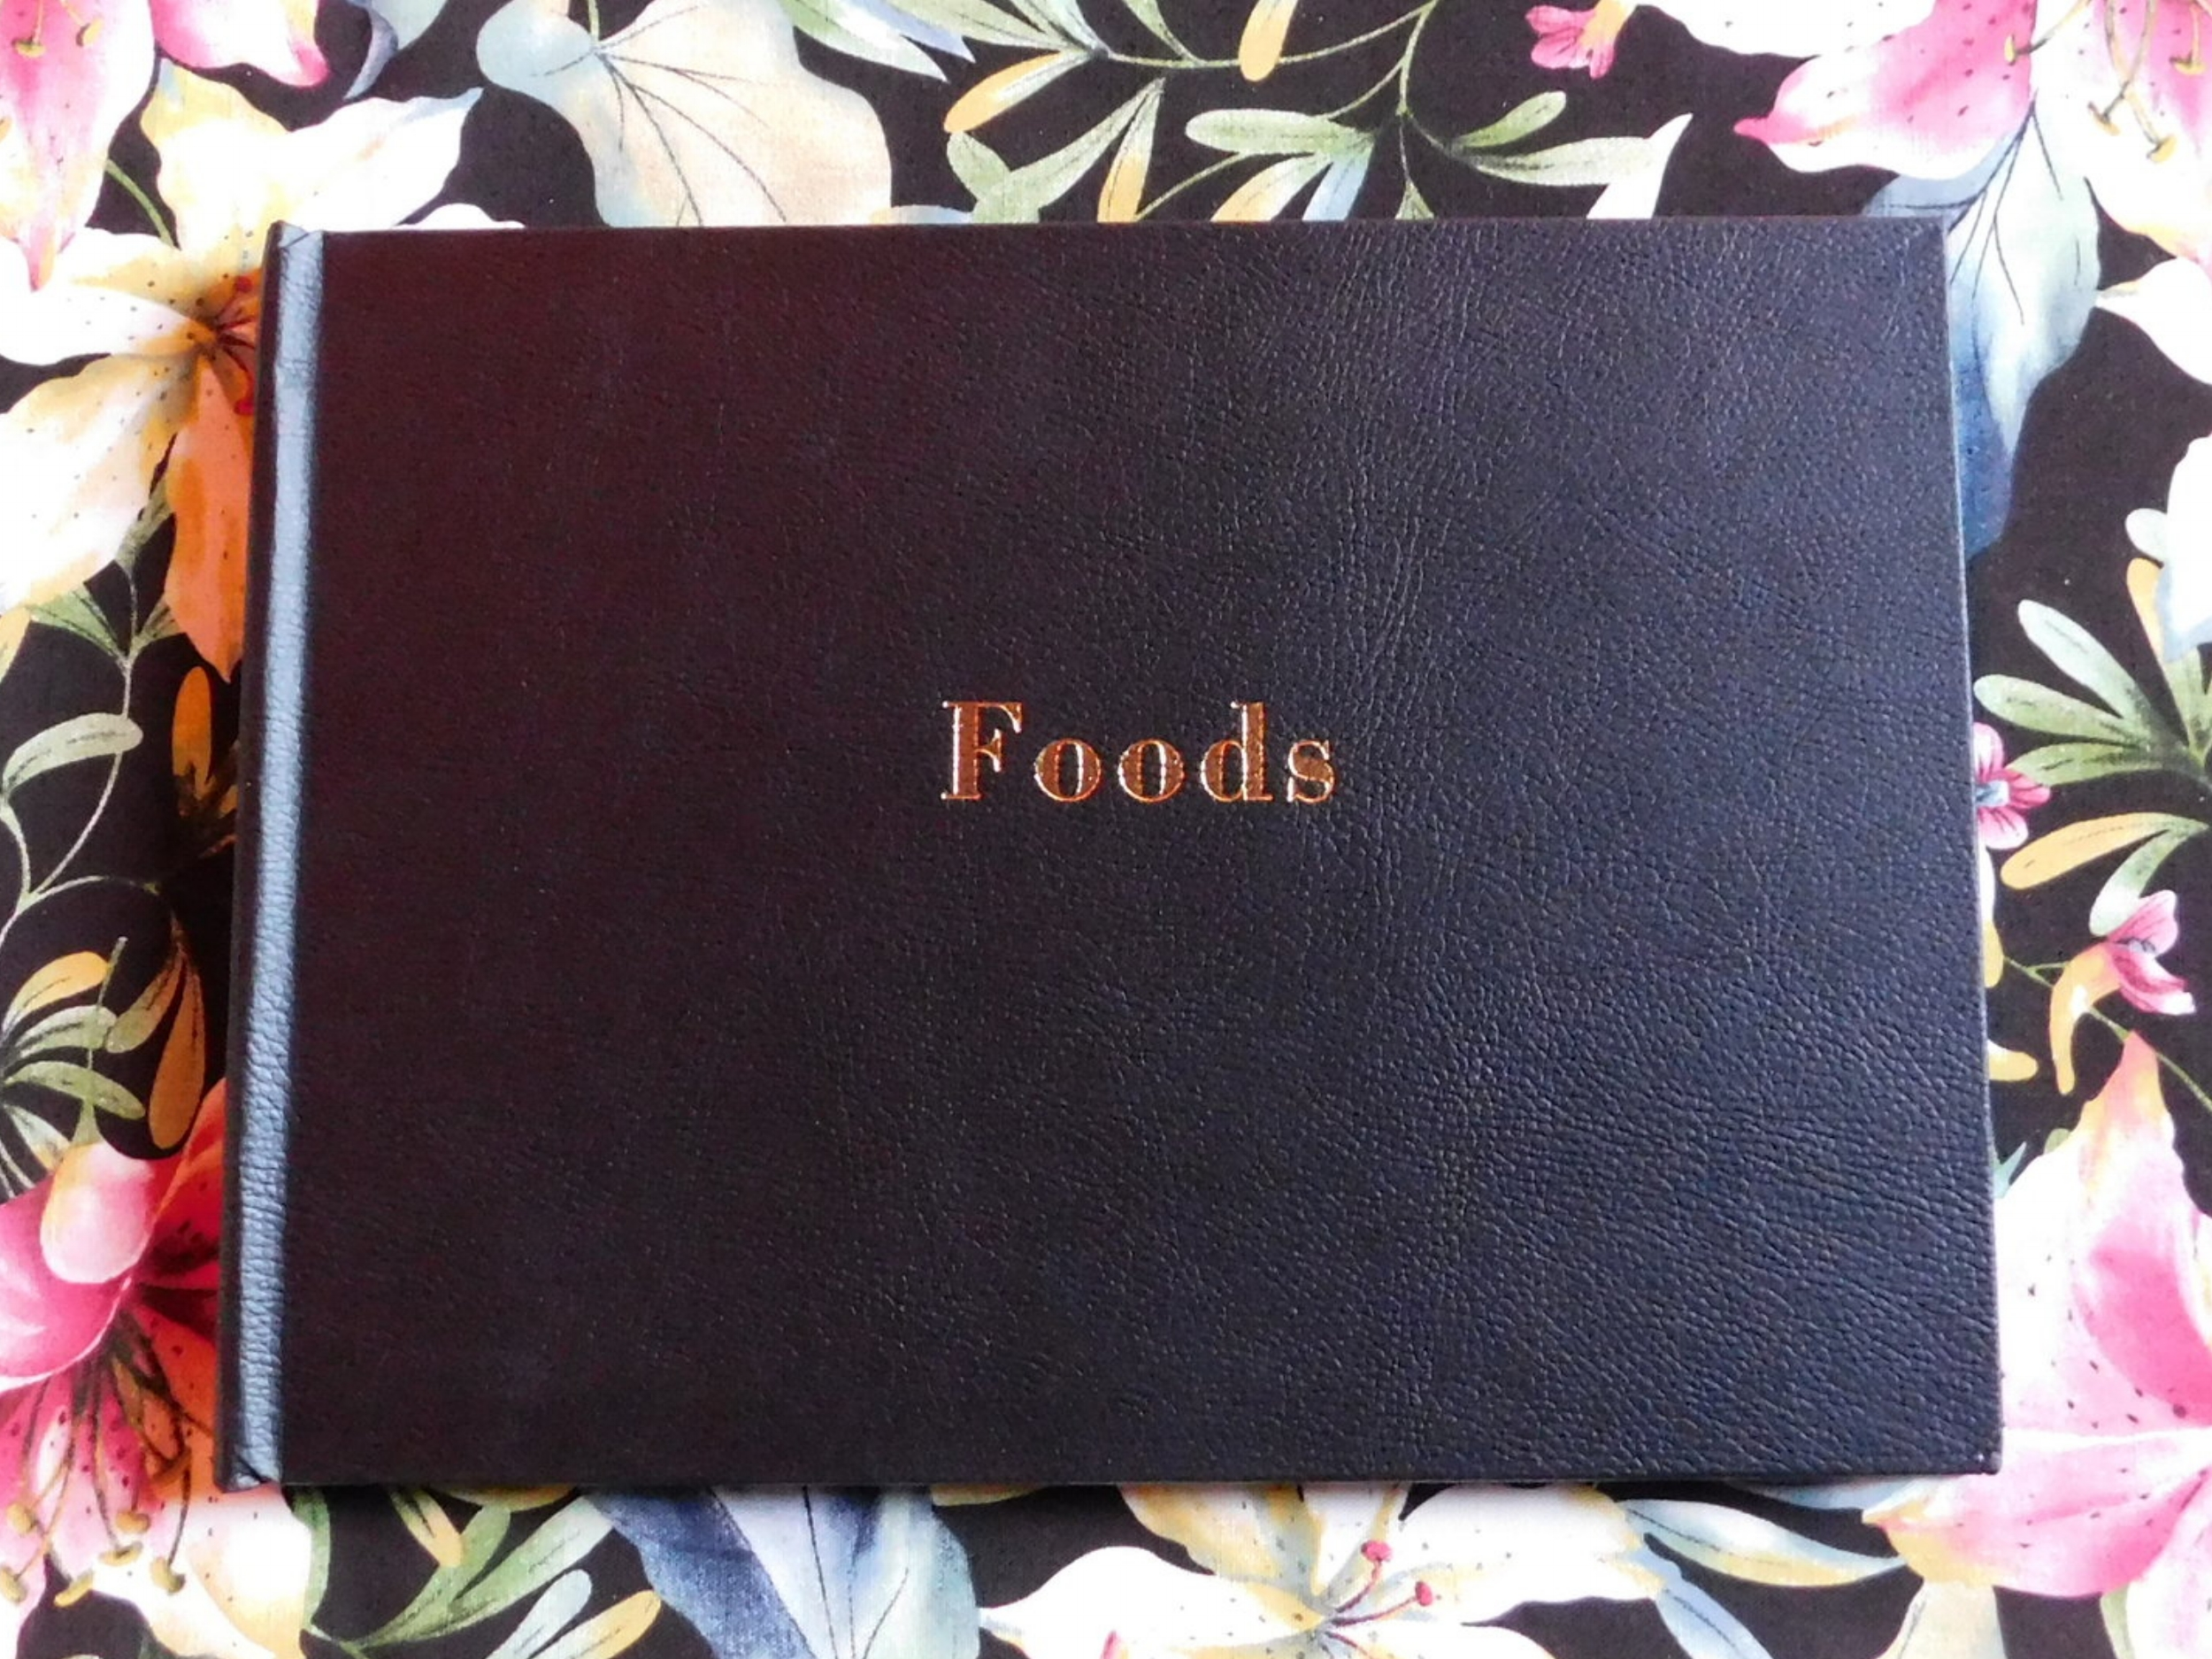 Foods  (2017), artist books. Photo by the author.